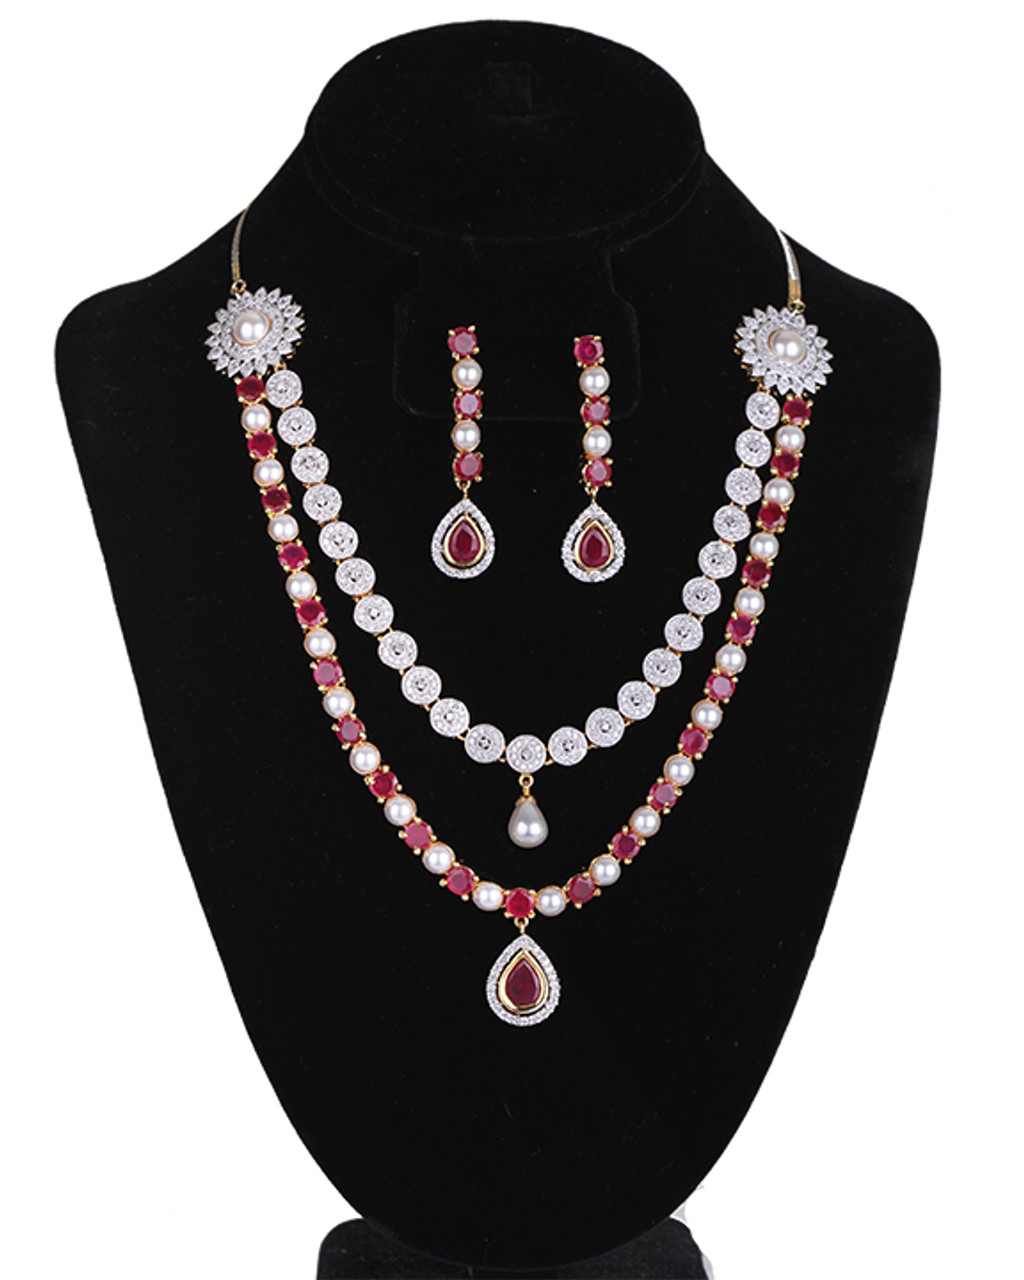 e843693a3 Ethnic fashion Jewelry Simulated Ruby CZ AD Necklace Set Gold ...